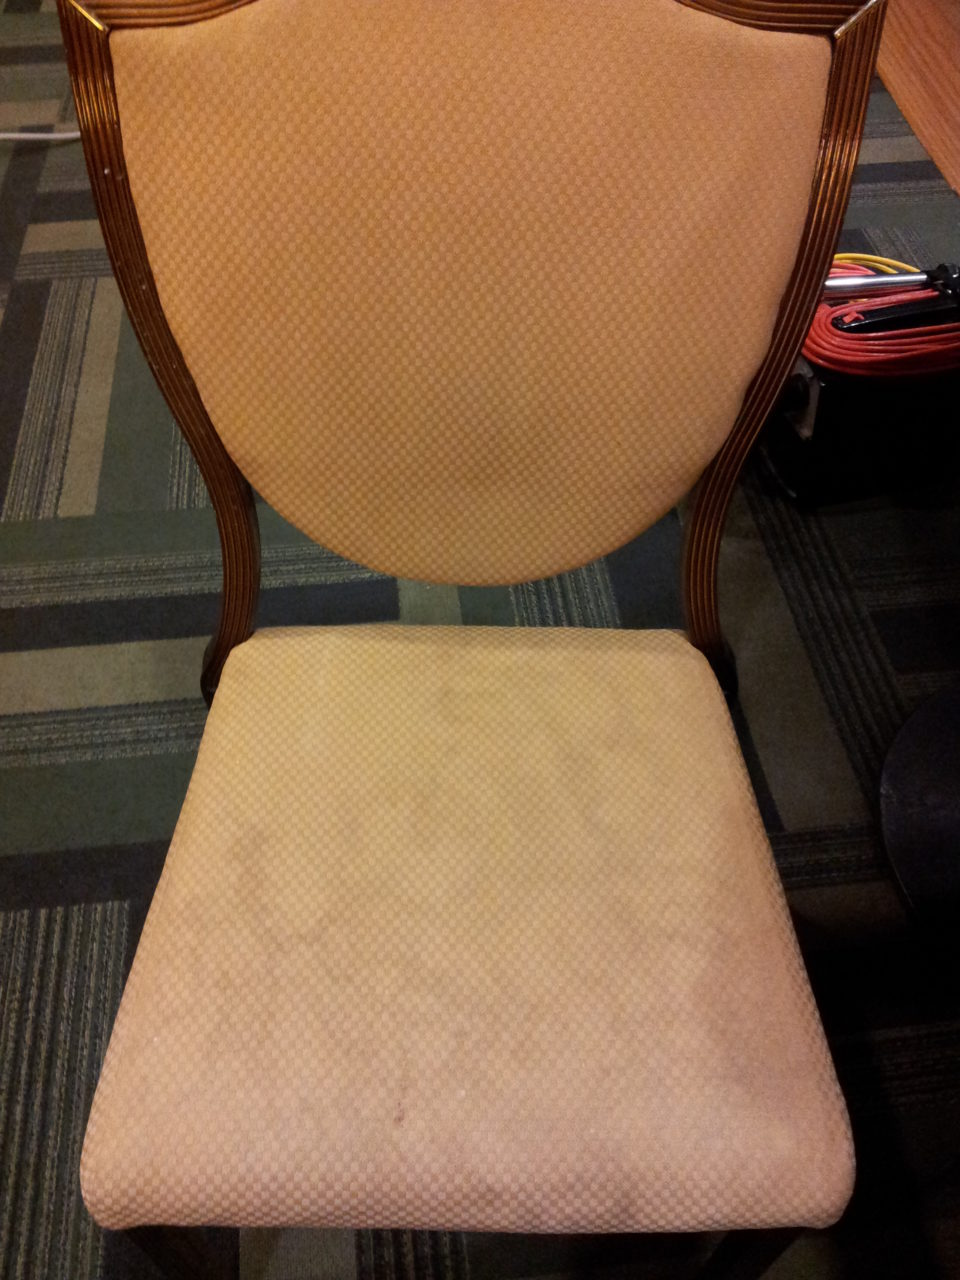 Seat Before Before & after photos